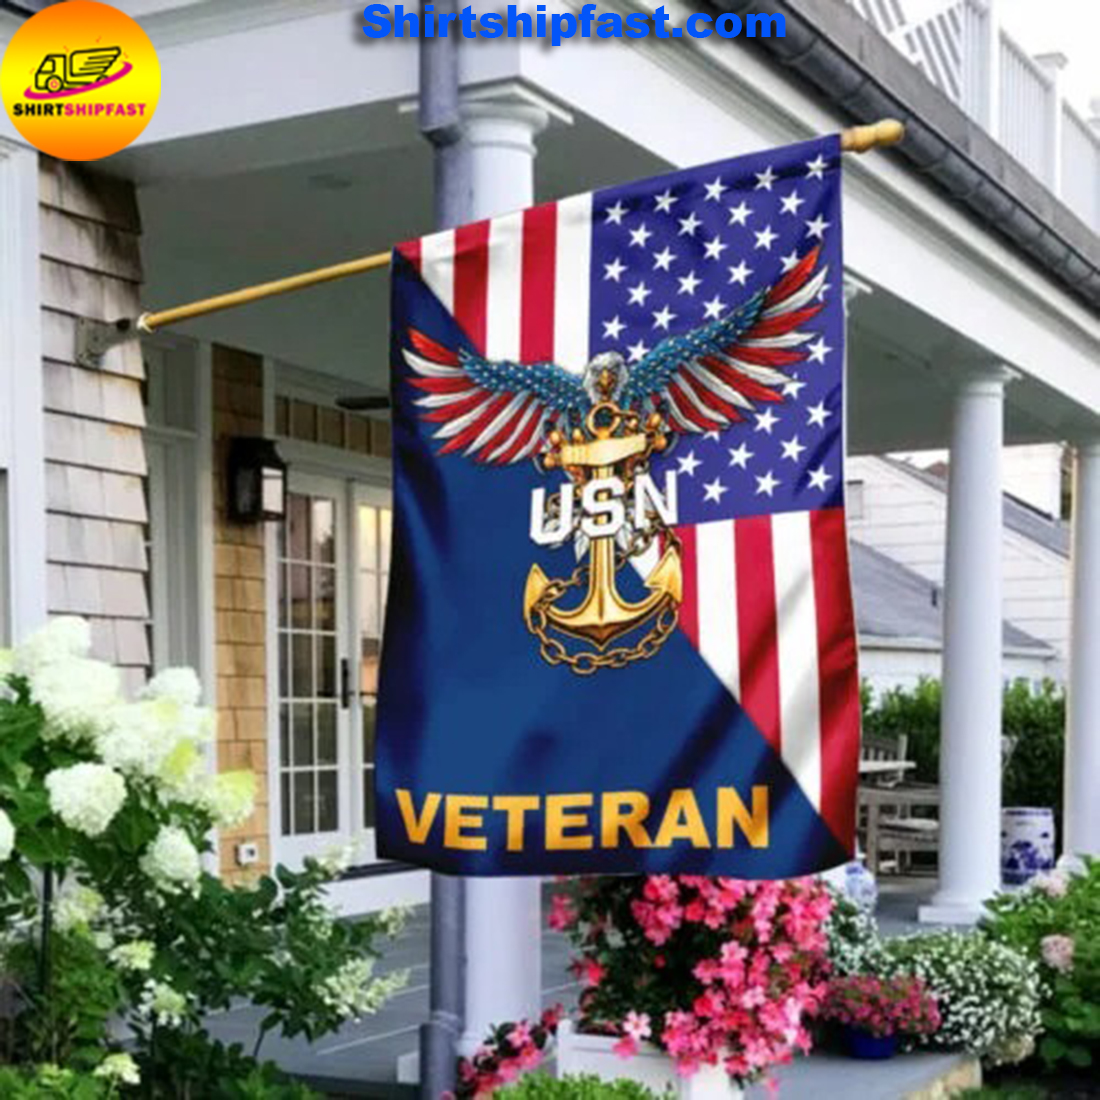 United States Navy American Eagle Veteran Flag - Picture 2